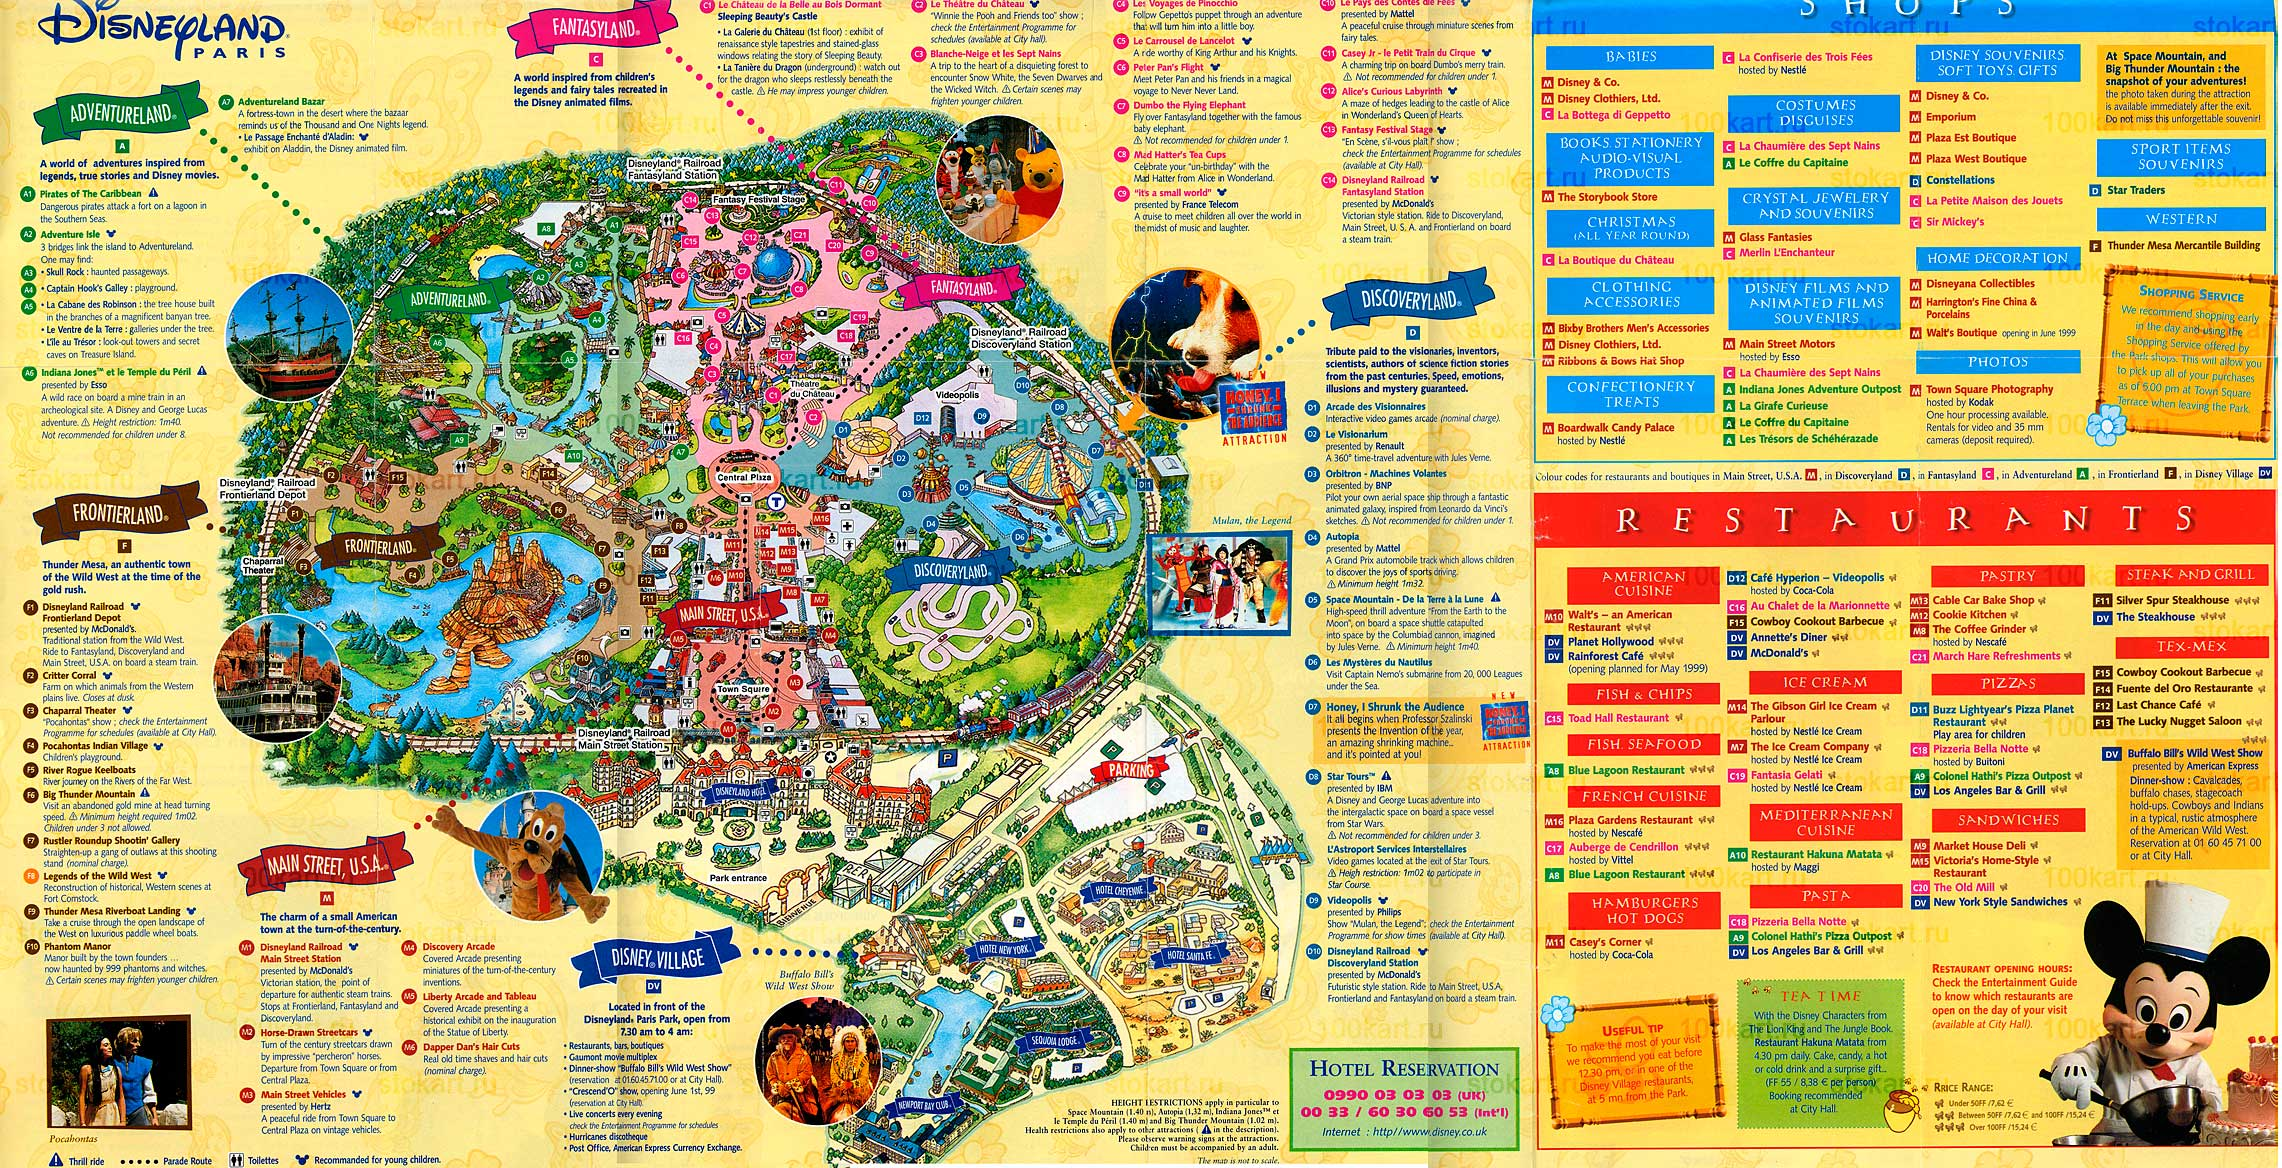 product positioning map for walt disney Overview walt disney parks and resorts are where dreams come true more than sixty years ago, walt disney created a new kind of entertainment families could experience together, immersed in detailed atmospheres and vibrant storytelling.